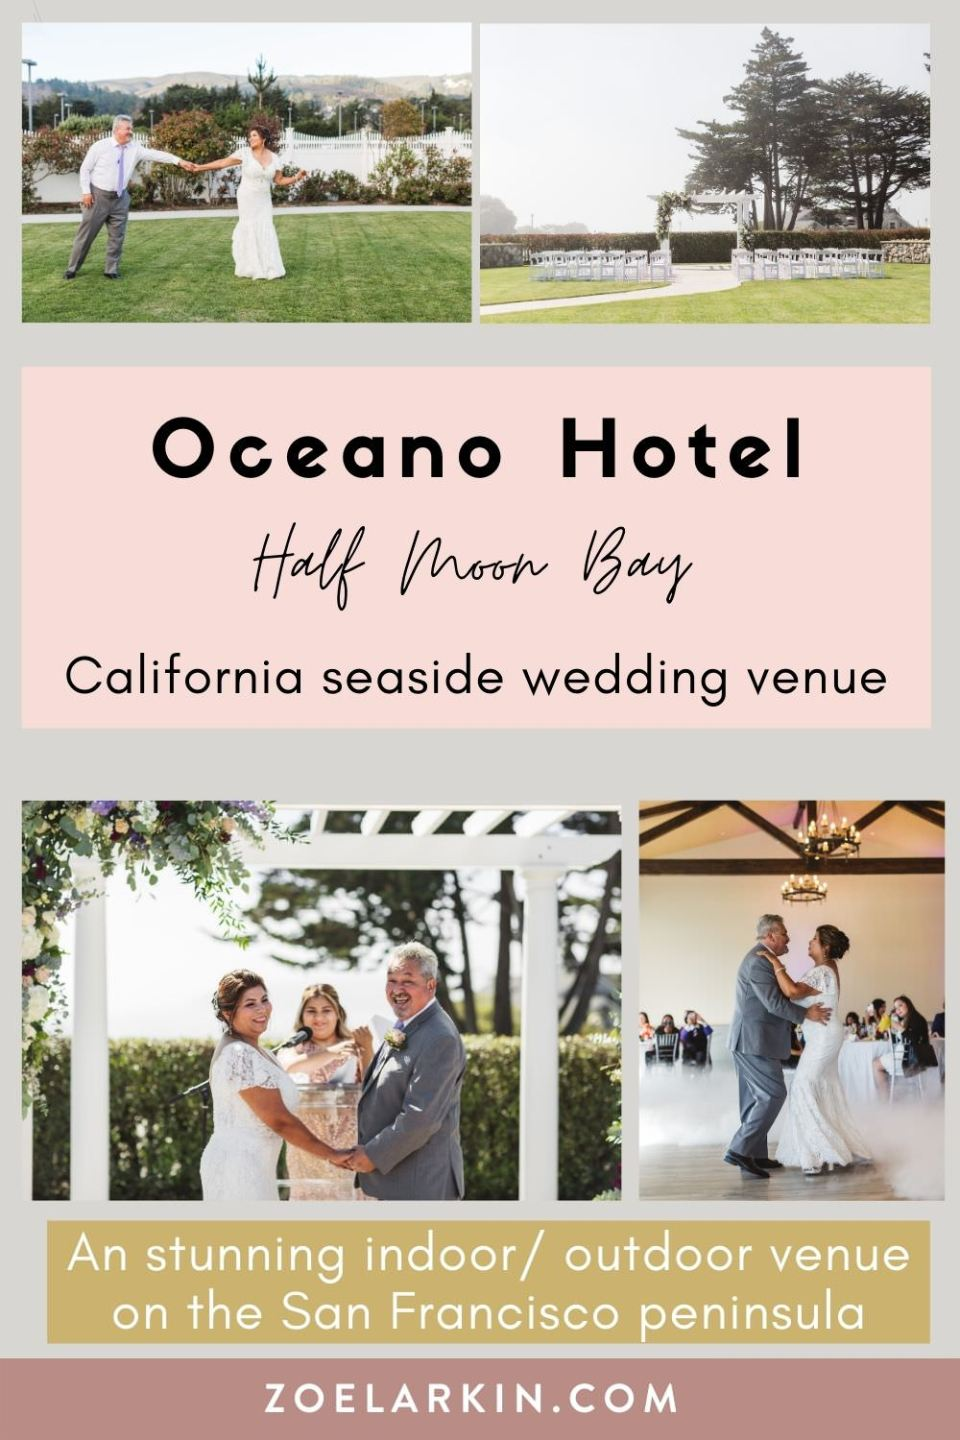 Presenting the stunning Oceano Hotel in Half Moon Bay, in the Bay Area of California. One of the most stunning Bay Area wedding venues, this blog post showcases one of my Latino couples who had a beautiful intimate wedding at this stunning coastal California wedding venue. If you're looking for venue ideas for your intimate Bay Area wedding, the Oceano Hotel and Spa could be perfect for you as a budget-friendly, spacious venue option. | #bayareawedding #weddingphotographer